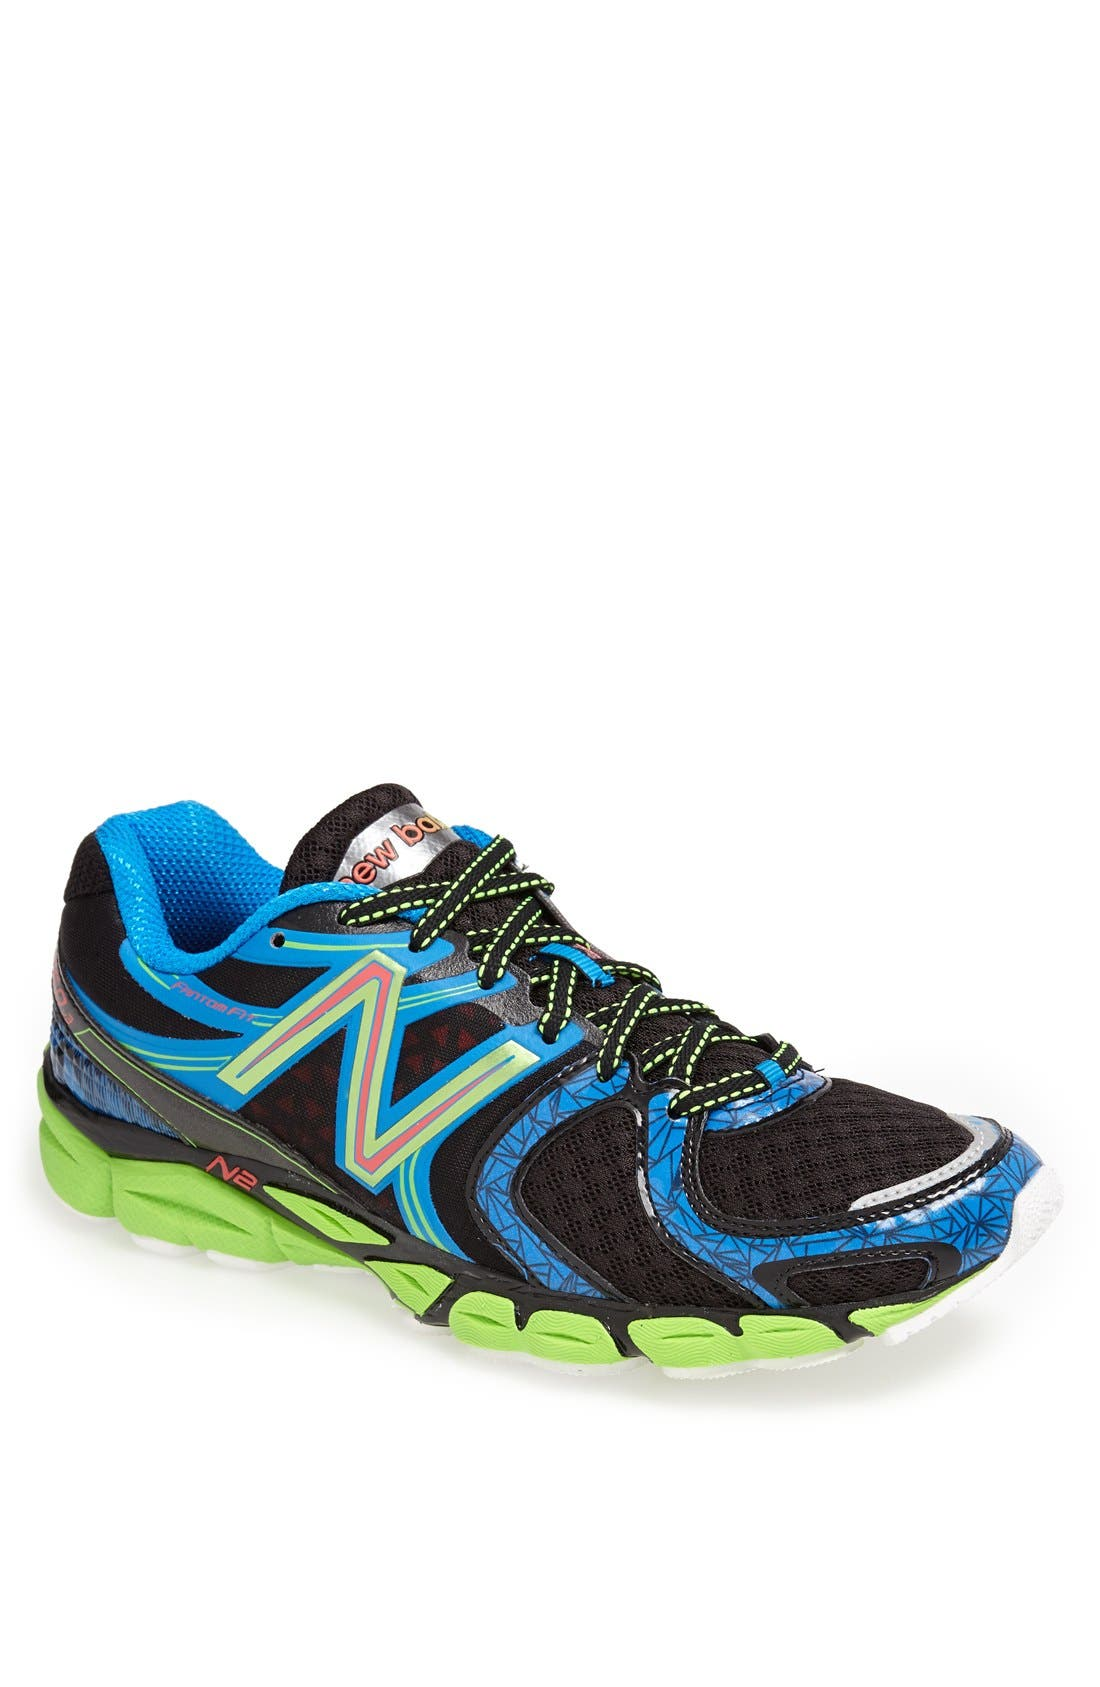 Main Image - New Balance '1260v3' Running Shoe (Men)